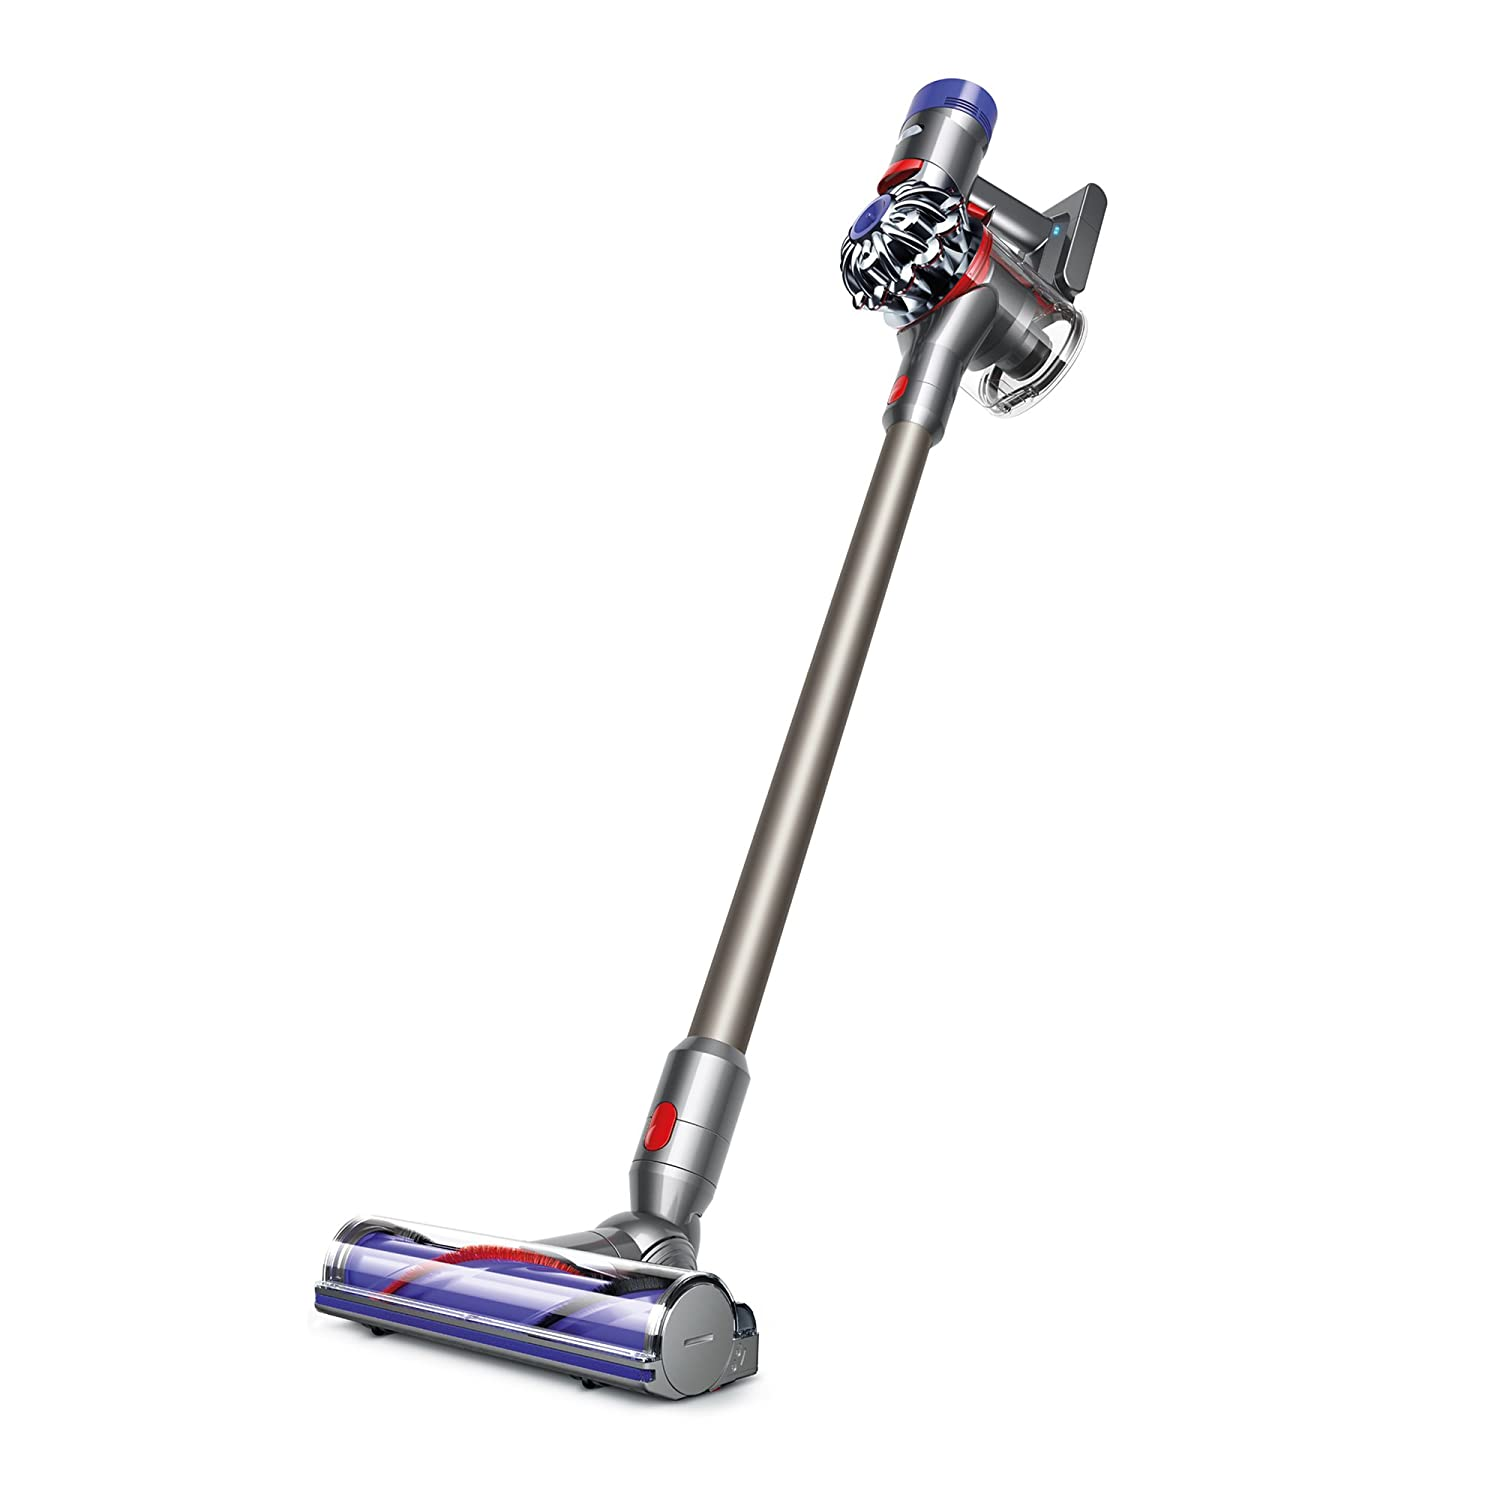 Dyson V8 Animal – Best cordless vacuum for pet hair